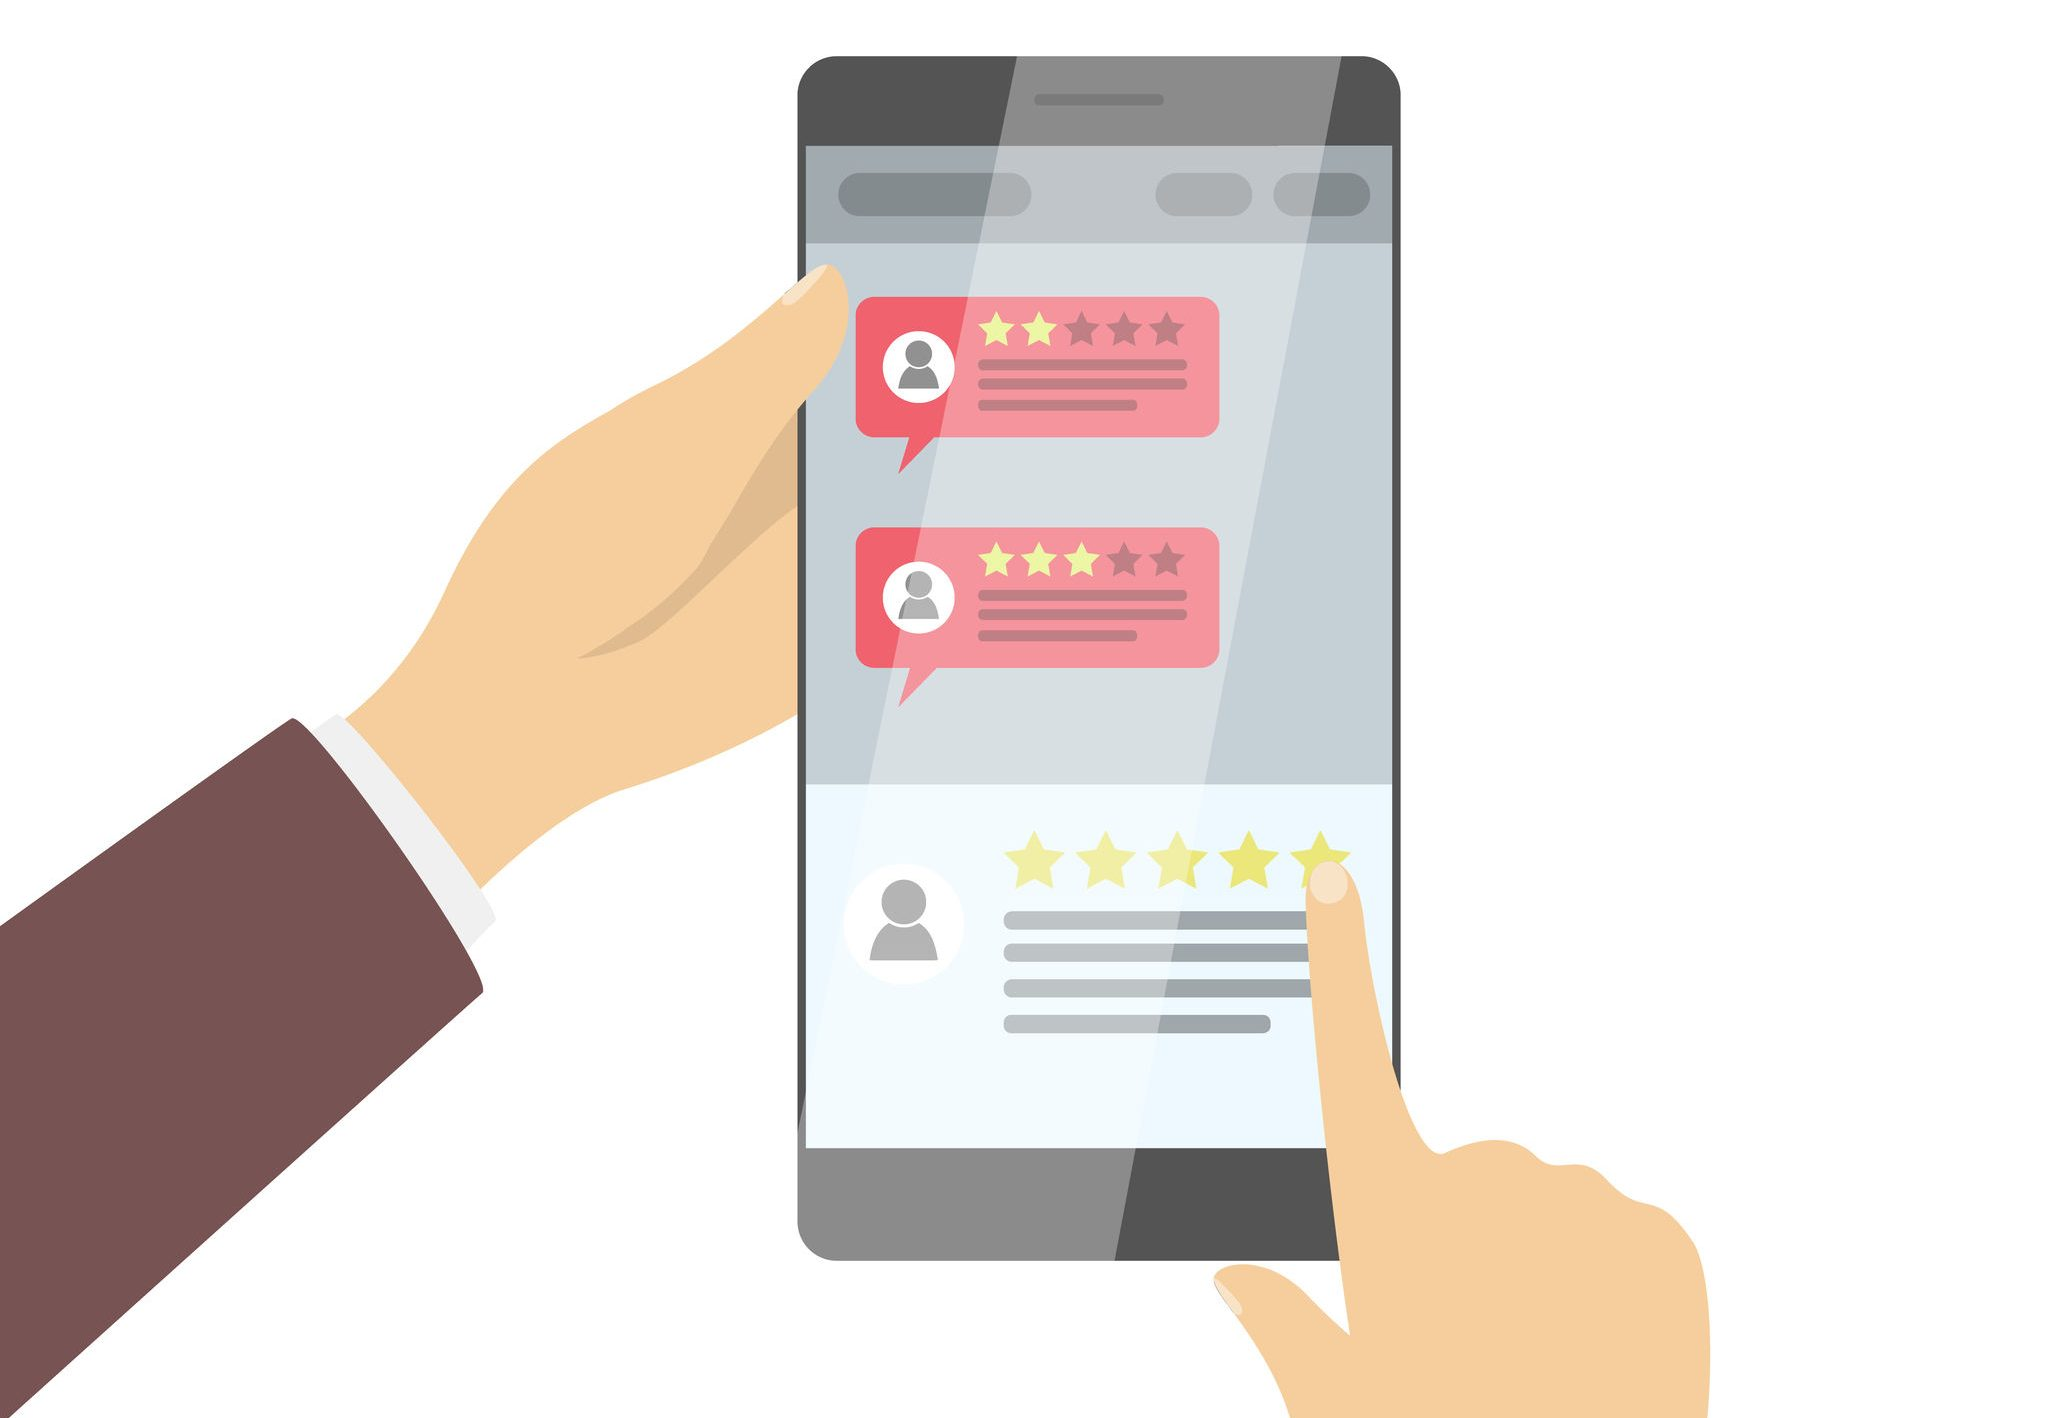 5 Best Ways For Restaurants To Get More Reviews